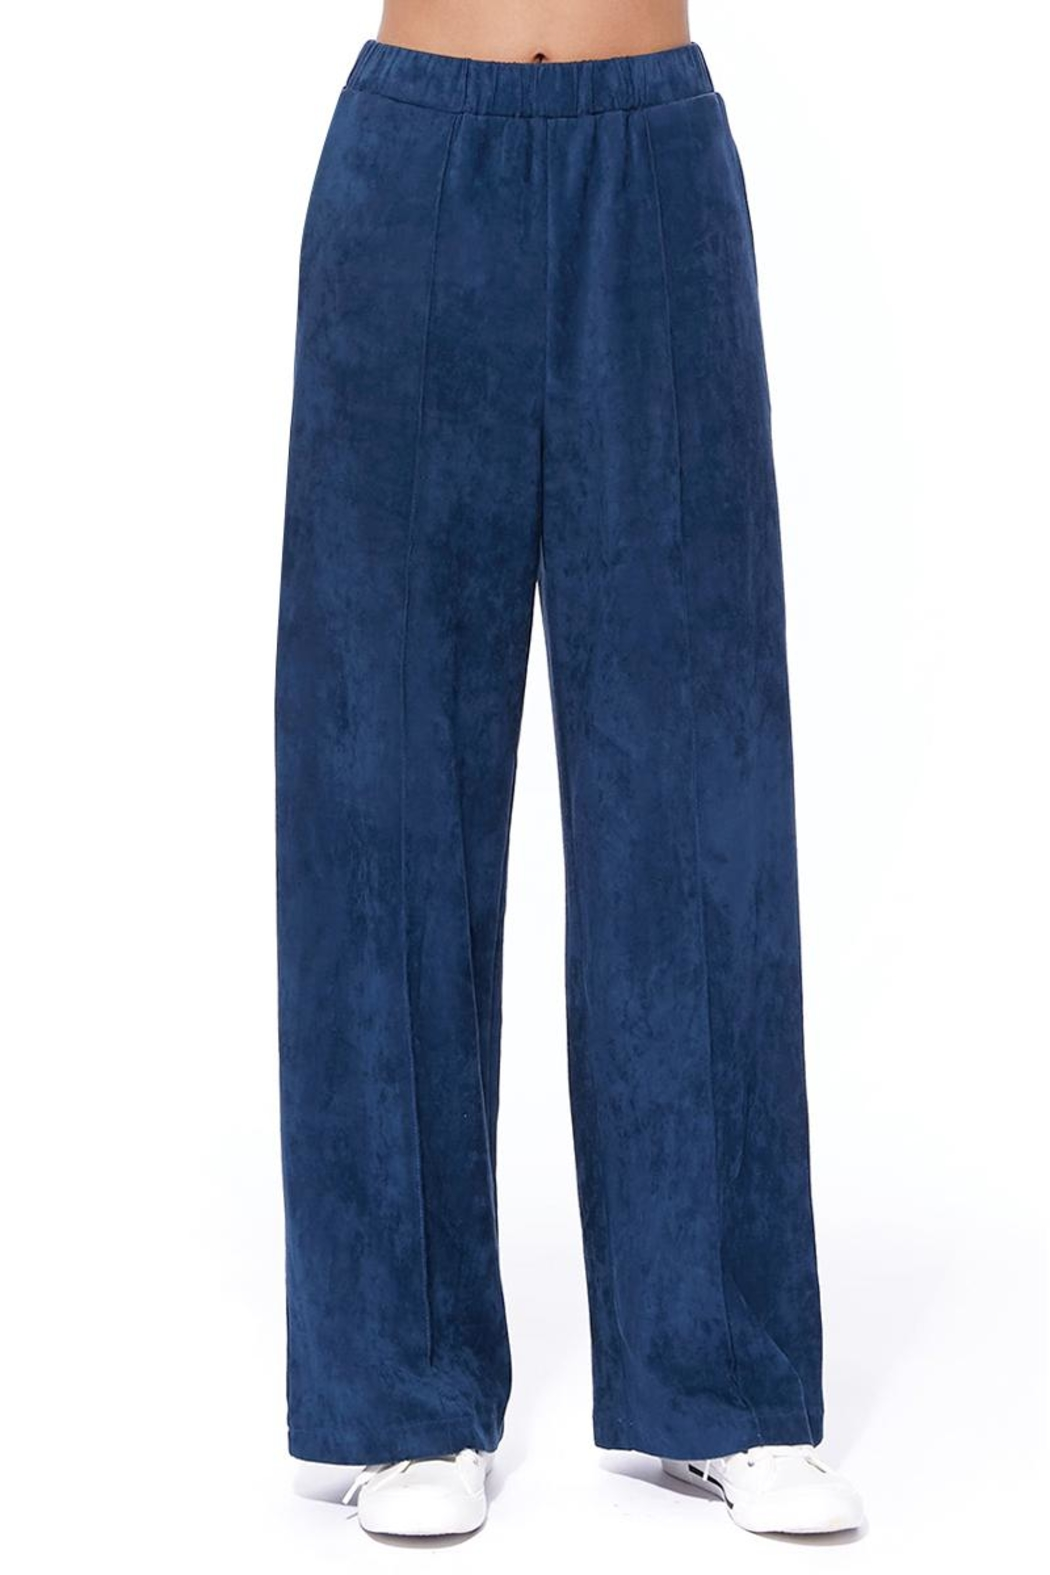 Aryeh Navy Faux Suede Pants - Main Image